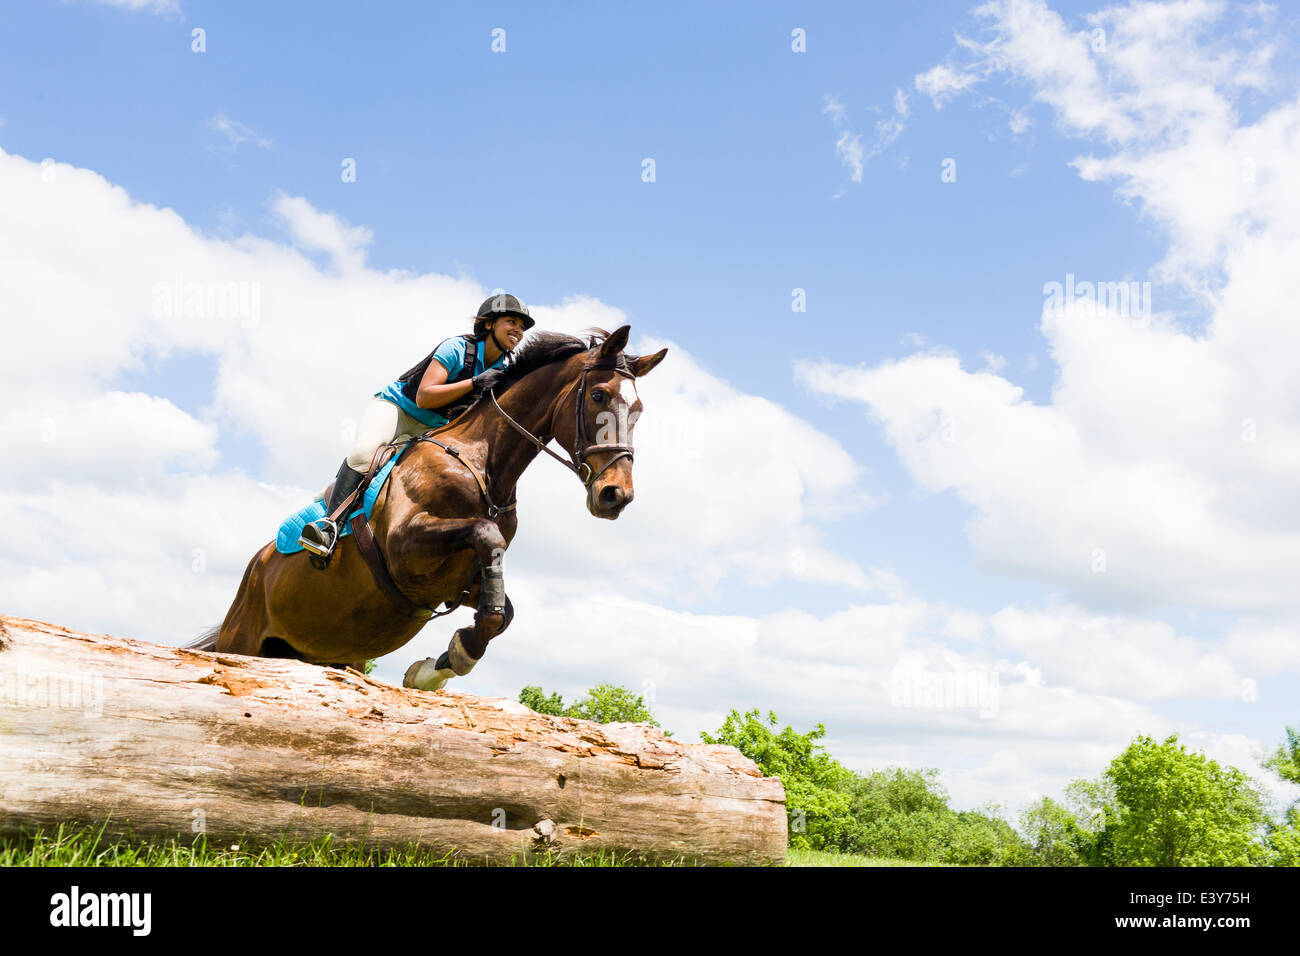 Horse Rider jumping on horse Photo Stock